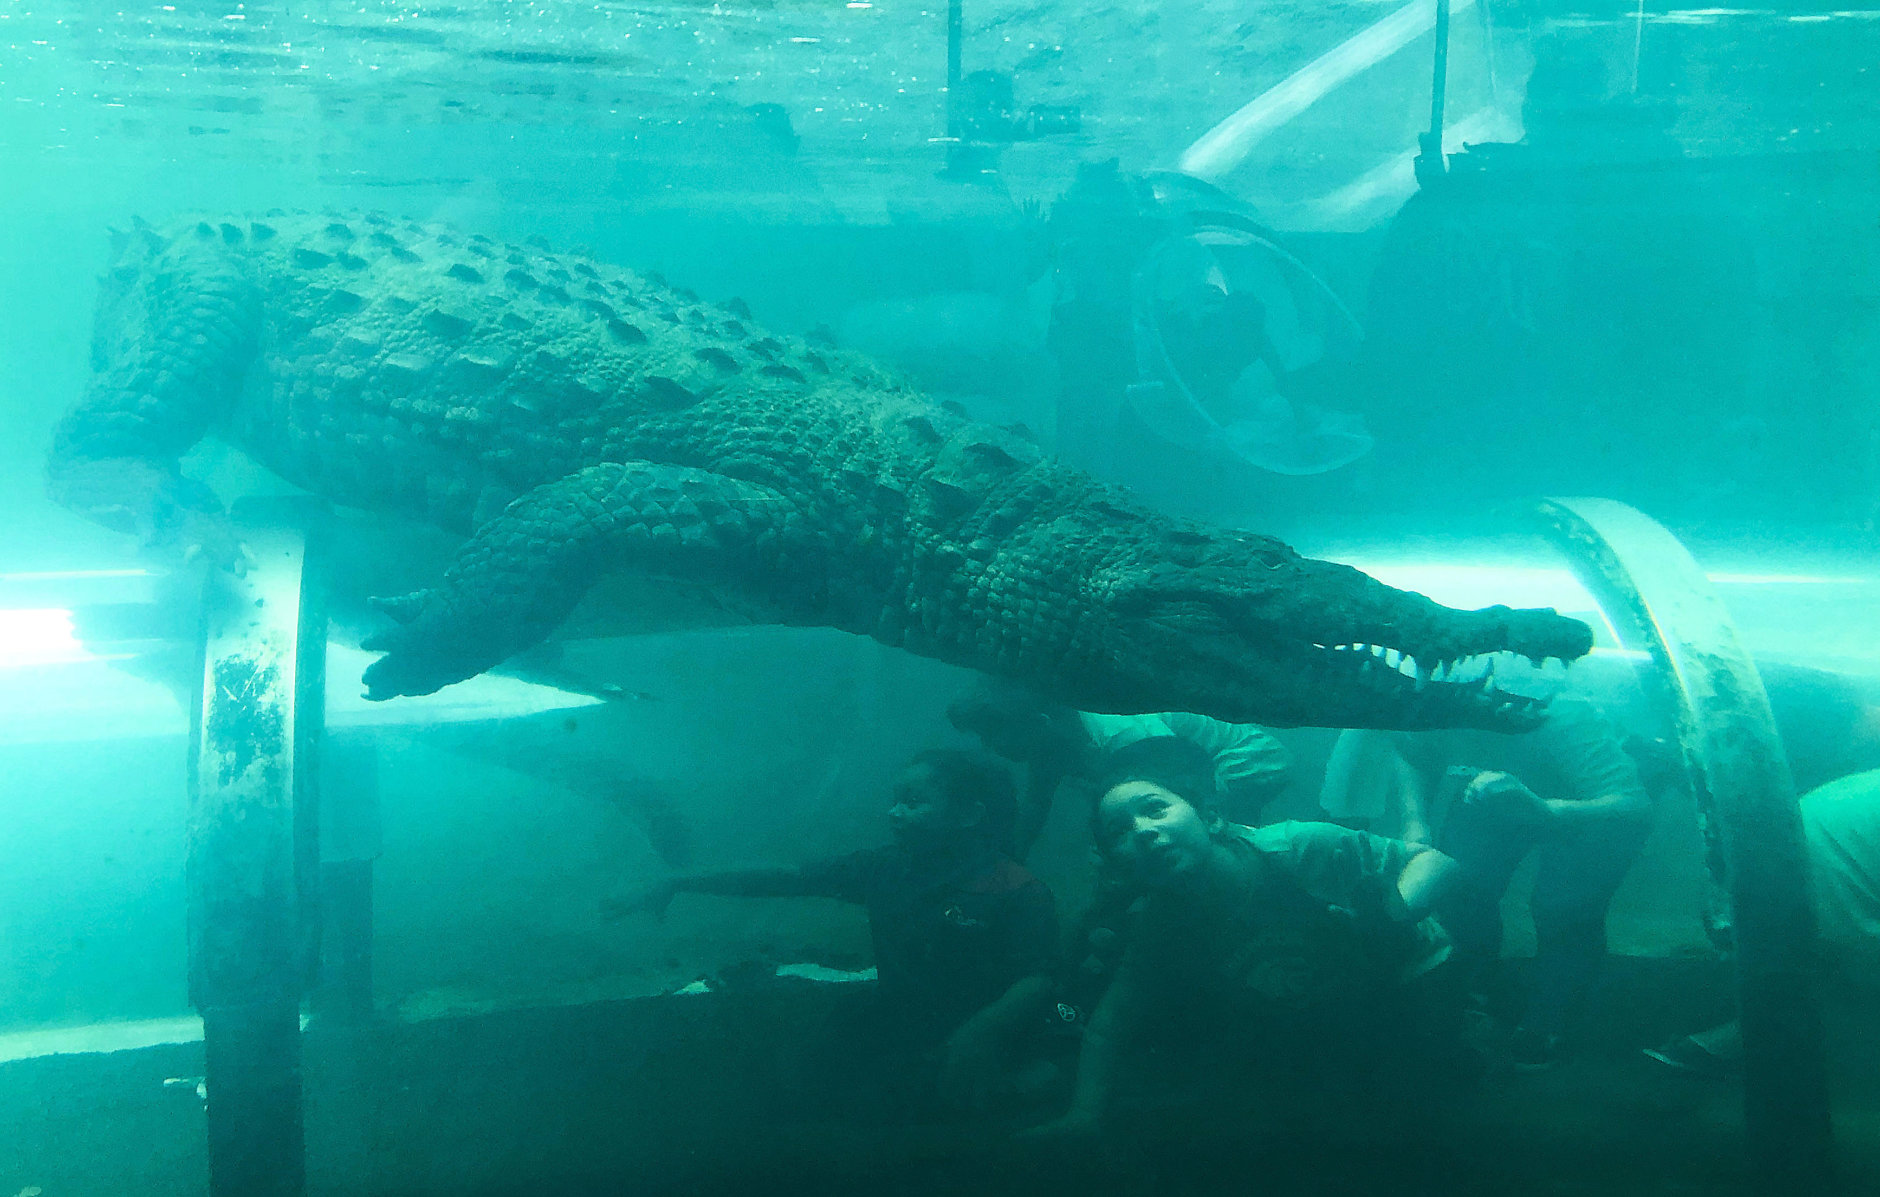 A child looks up as an American crocodile swims above at Zoo Miami on Thursday, Feb. 21, 2019, in Miami. (AP Photo/Brynn Anderson)